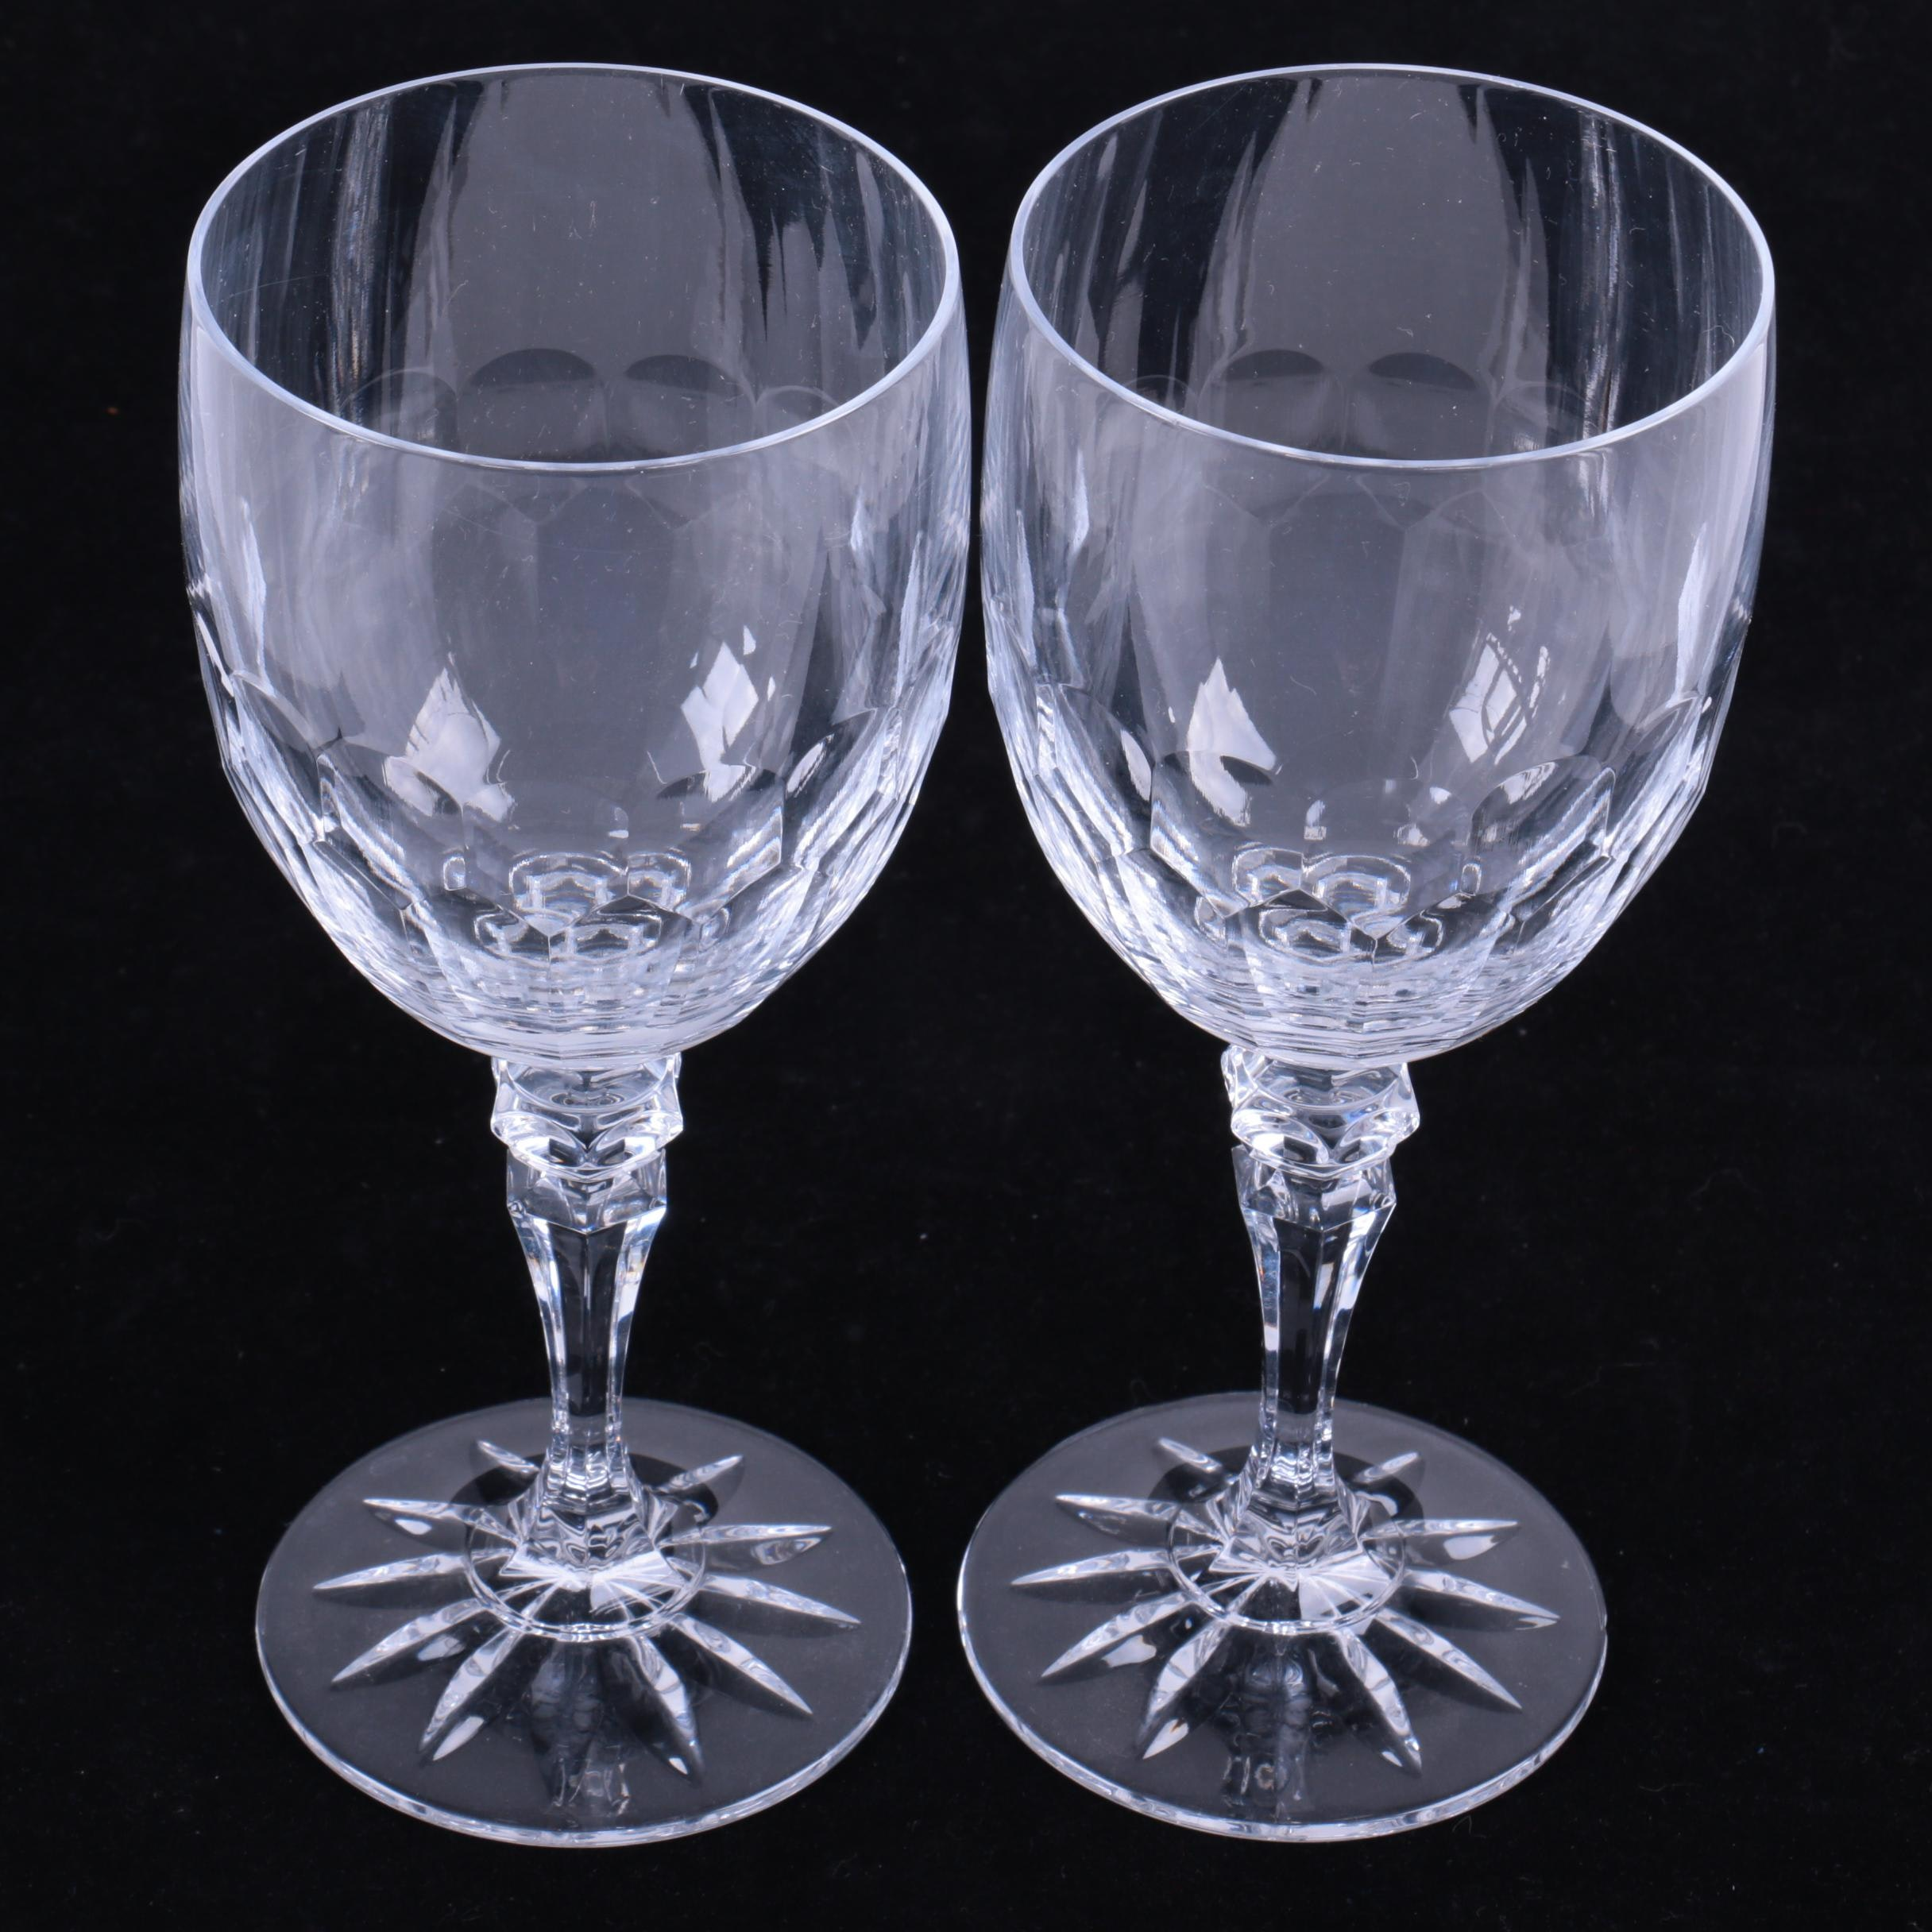 Pair of Thumbprint Cut Crystal Wine Glasses